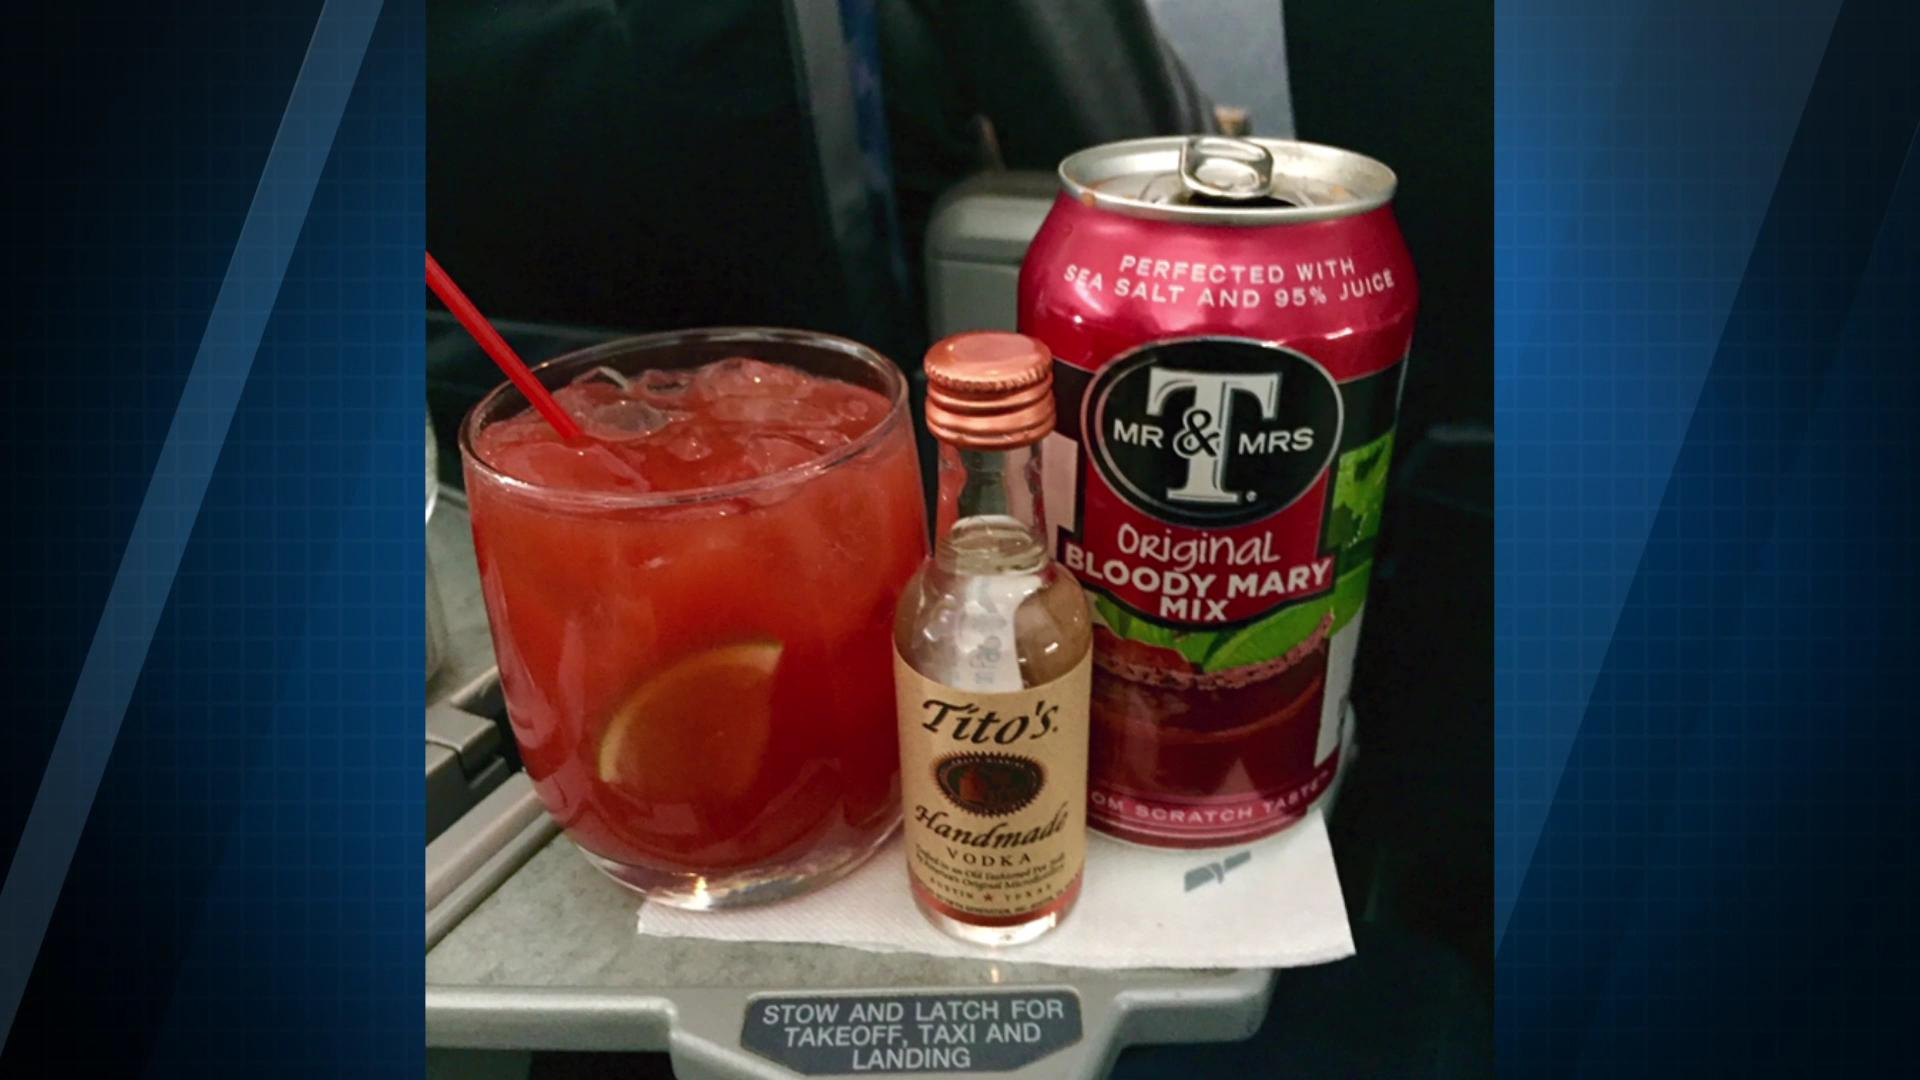 Science says certain foods and drinks like tomato juice taste better up in the air because of loud airplane noise. Sean Dowling (@seandowlingtv) explains.